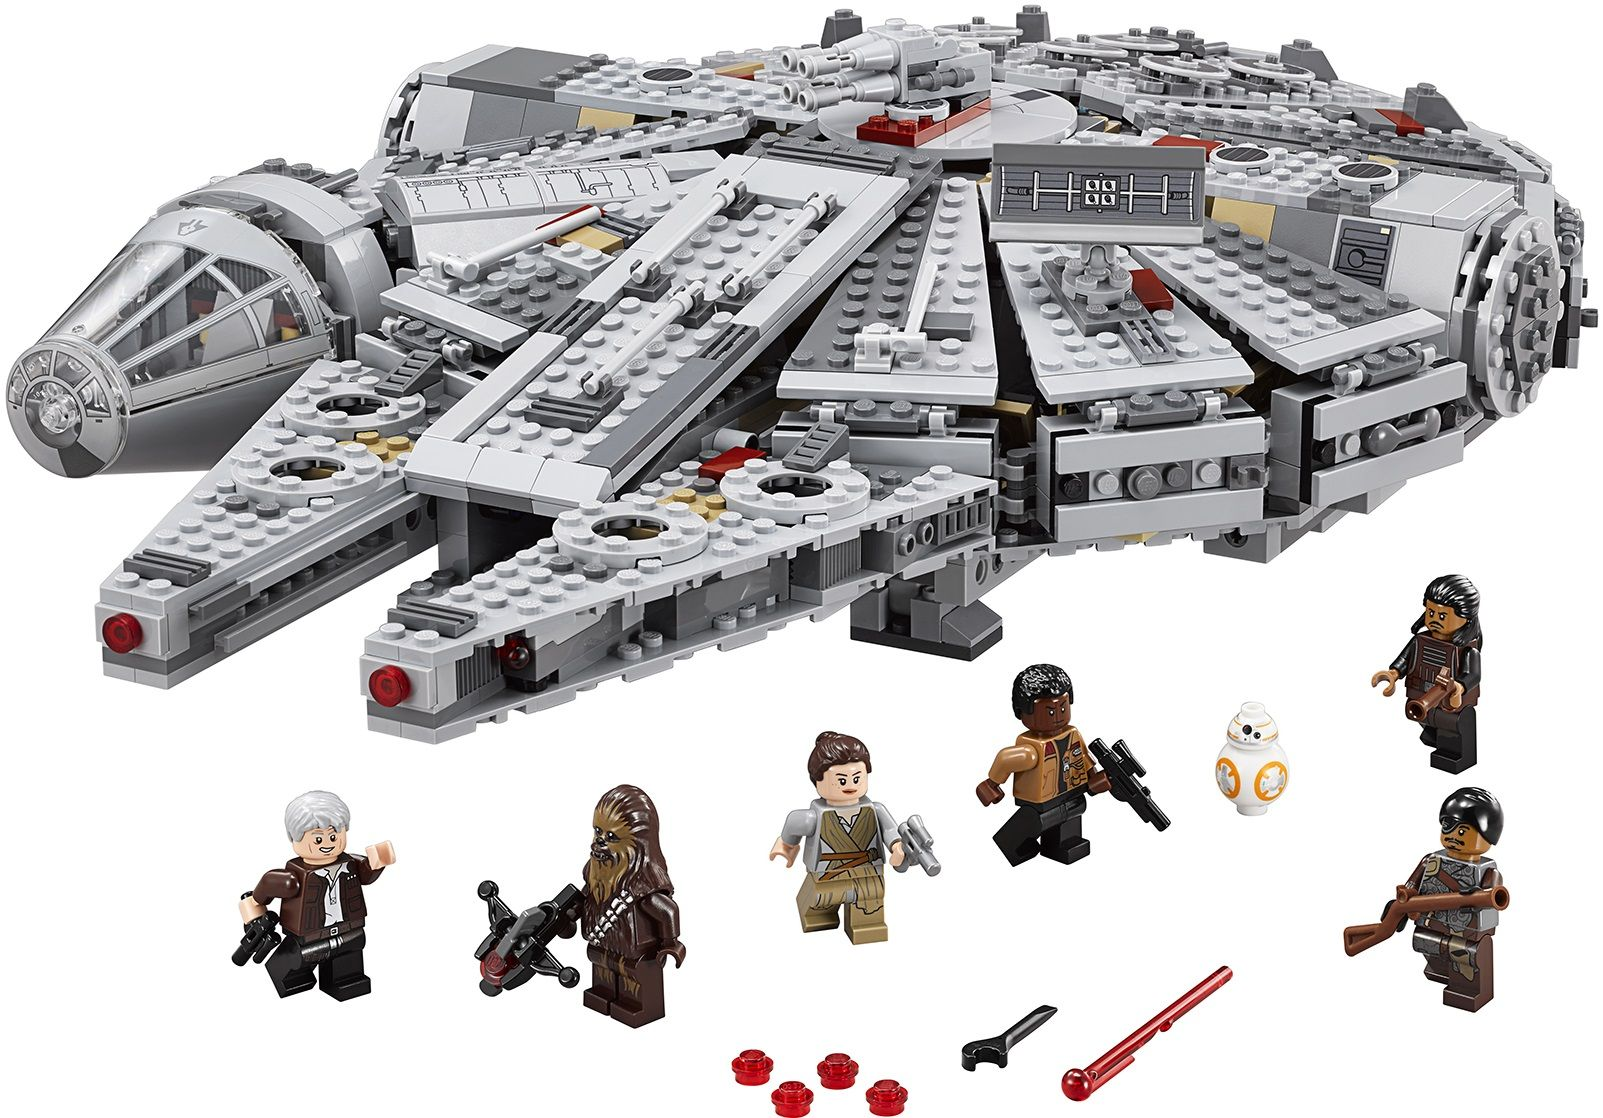 Star Wars The Force Awakens Official Lego Set Images - Needless ...